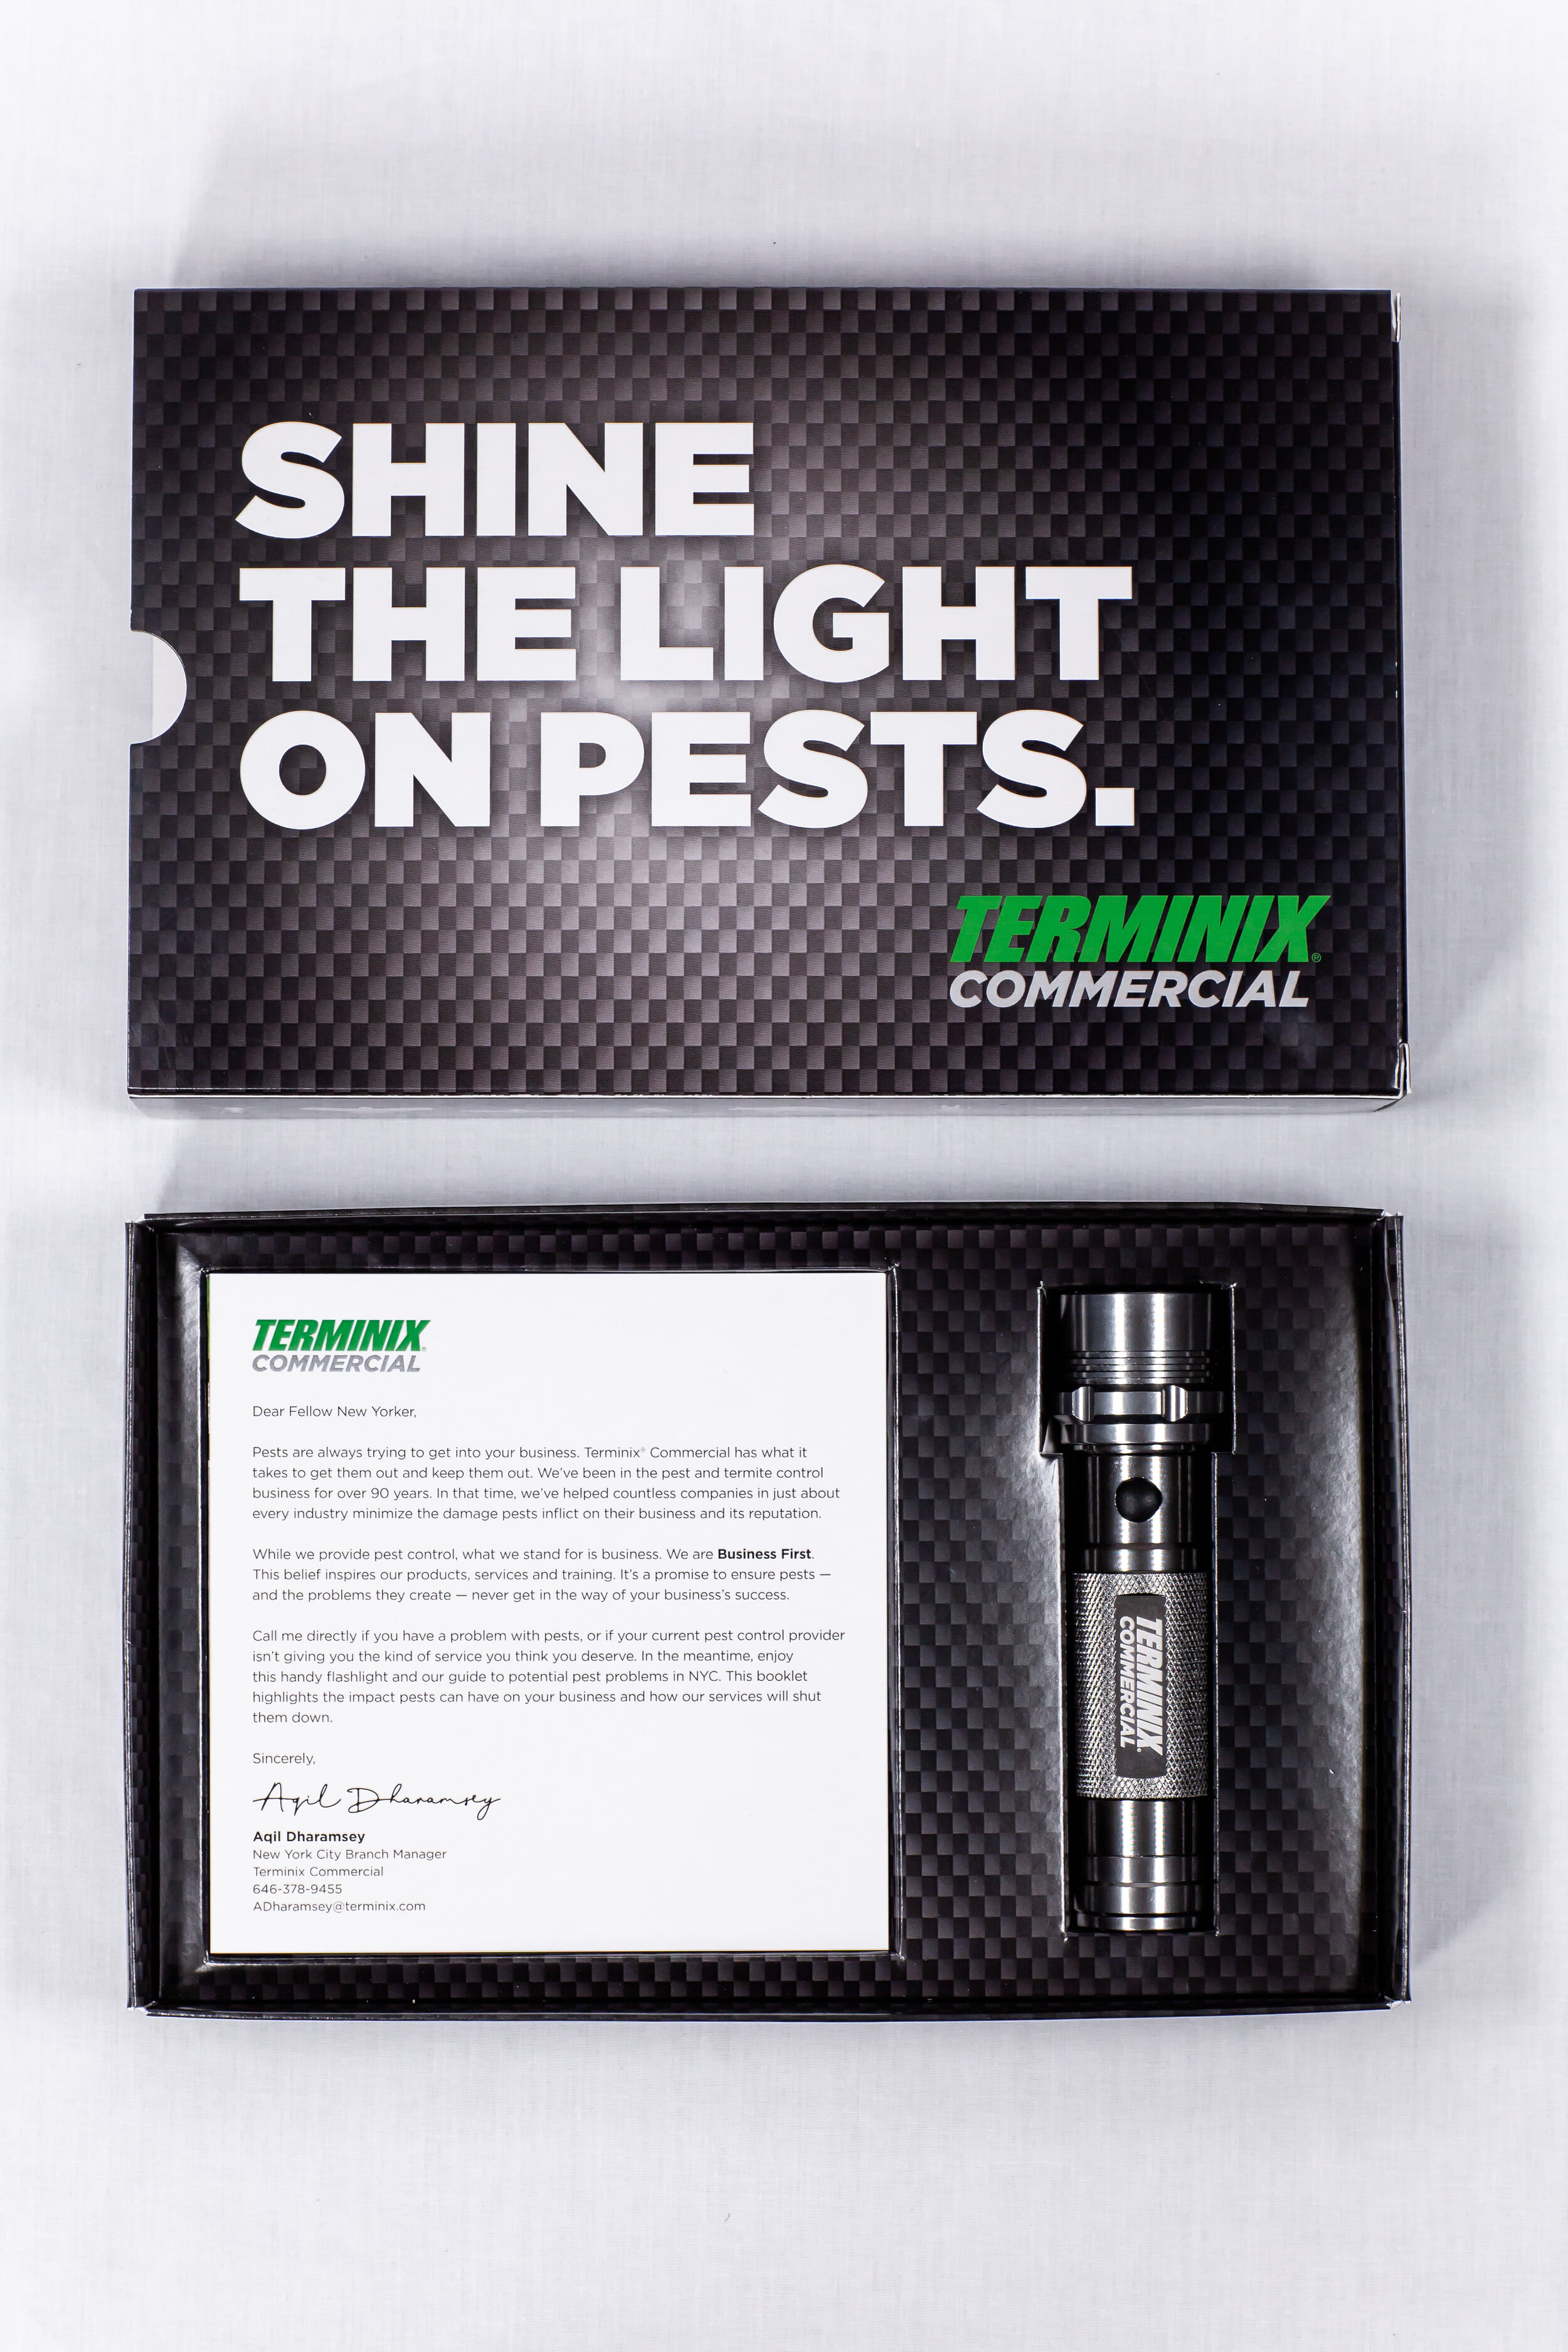 Terminix Commercial Direct Mail - There are a lot of businesses in New York. Obviously. Living in and around them are a lot of pests. We created this direct mail piece for Terminix Commercial to help business owners understand the threat that pests pose to their business. We provided a handy flashlight for them to shine a light on the pests in and around their business, as well as an easy to read brochure targeting New York specifically.